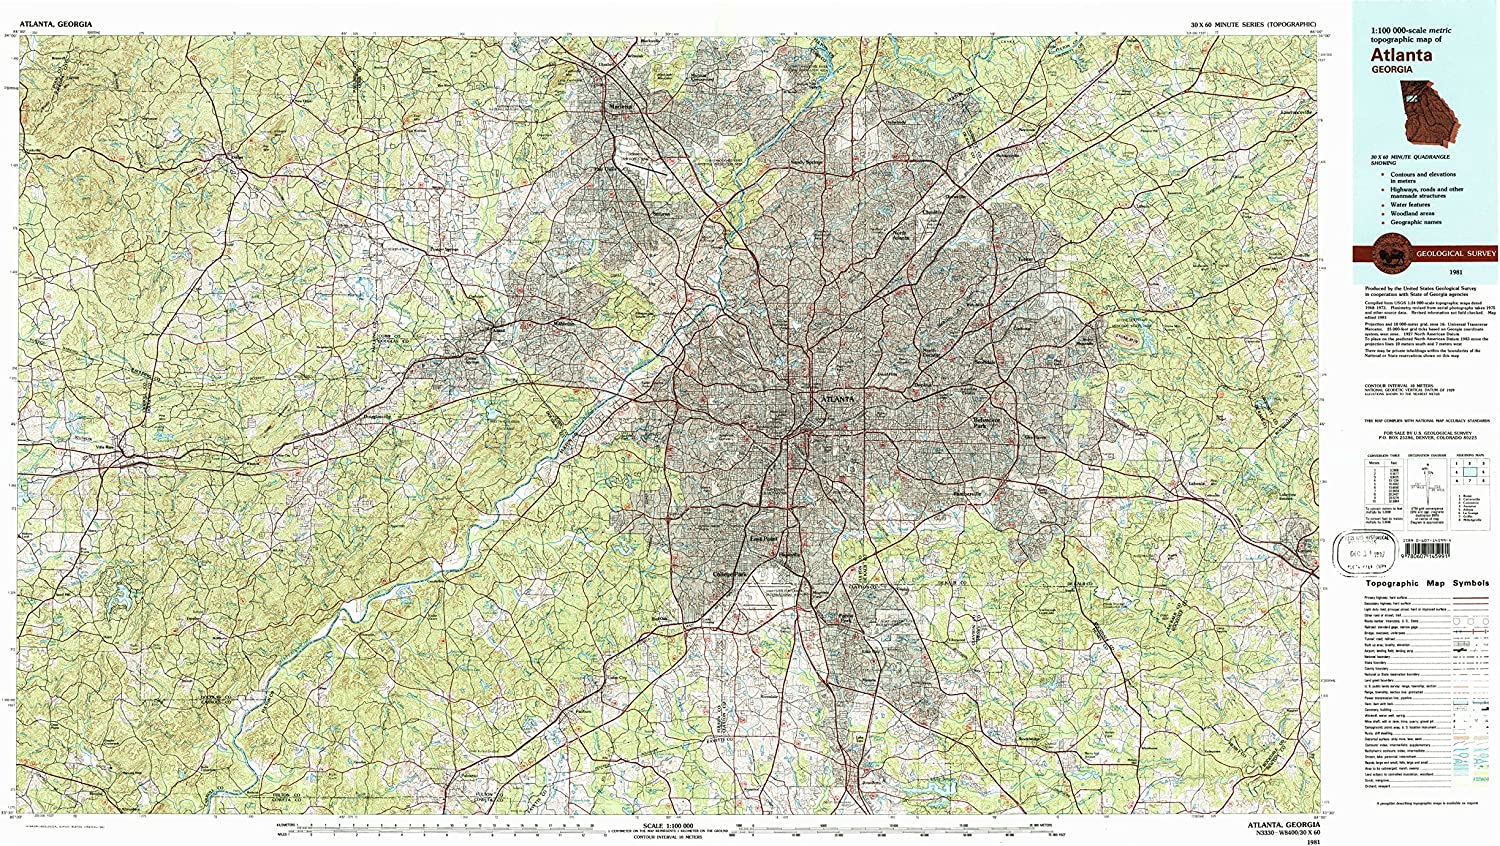 Historical 24.1 x 40 in YellowMaps Frederick MD topo map Updated 1985 1:100000 Scale 1984 30 X 60 Minute